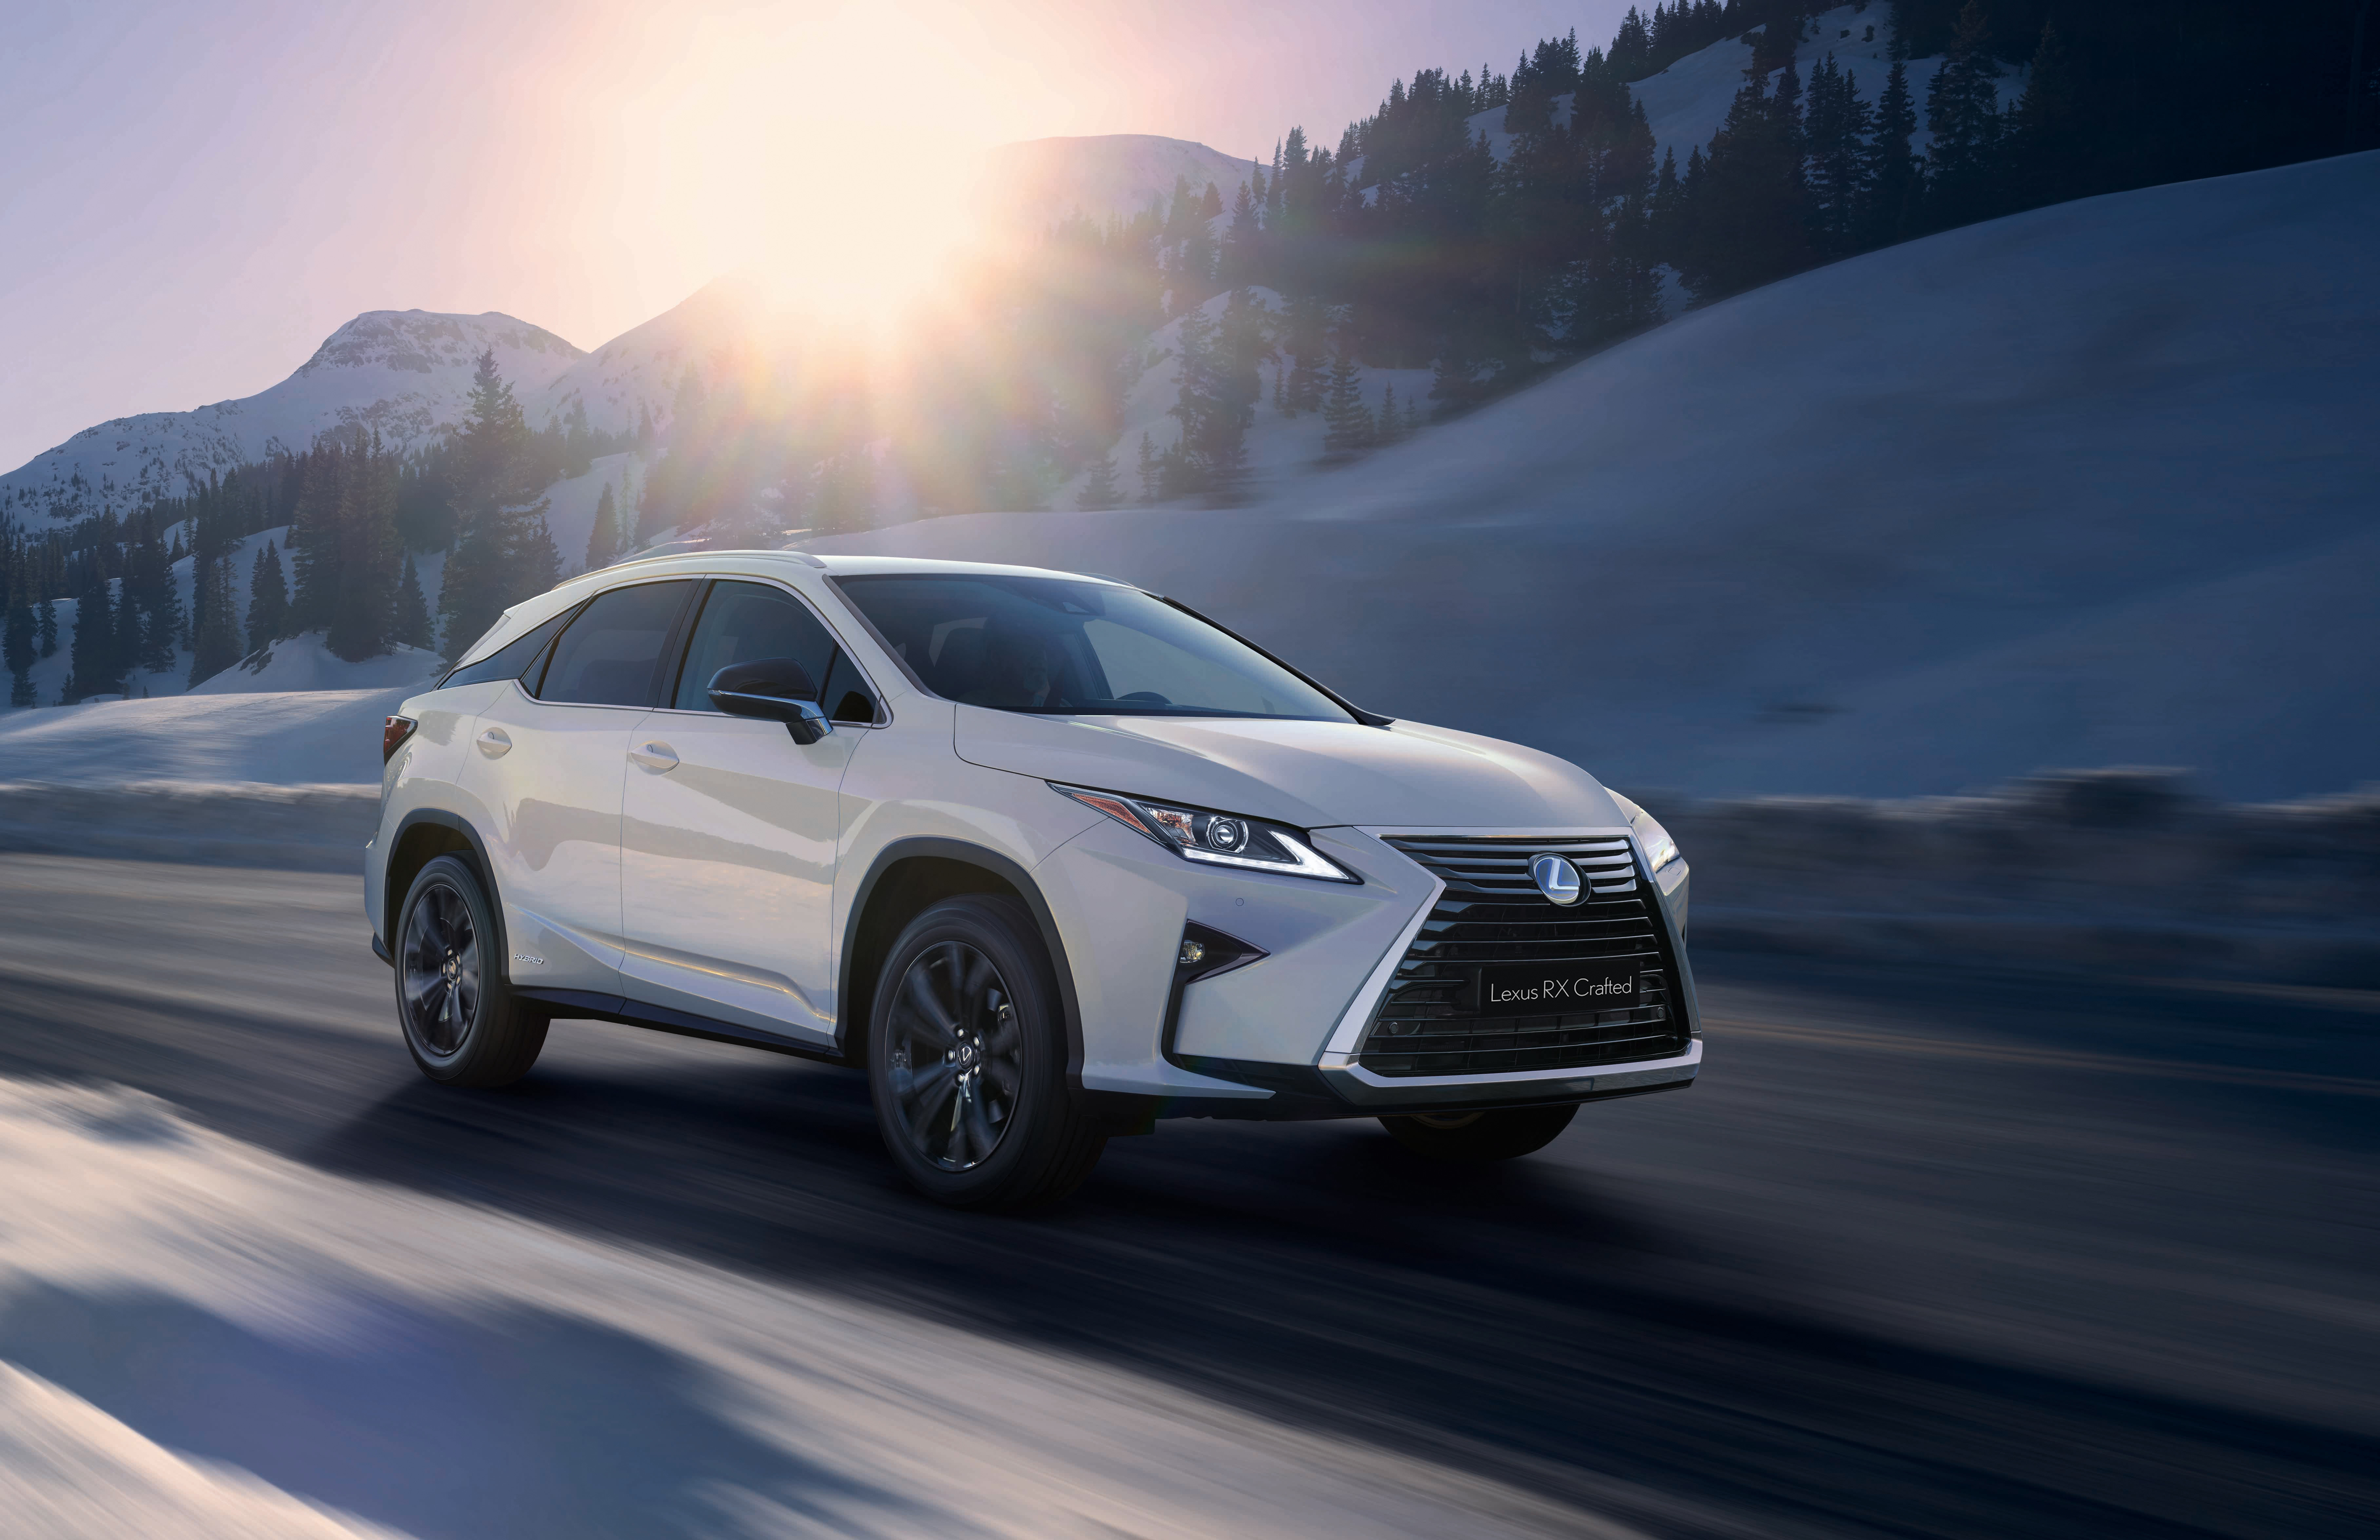 2018 Lexus Rx Crafted Top Speed